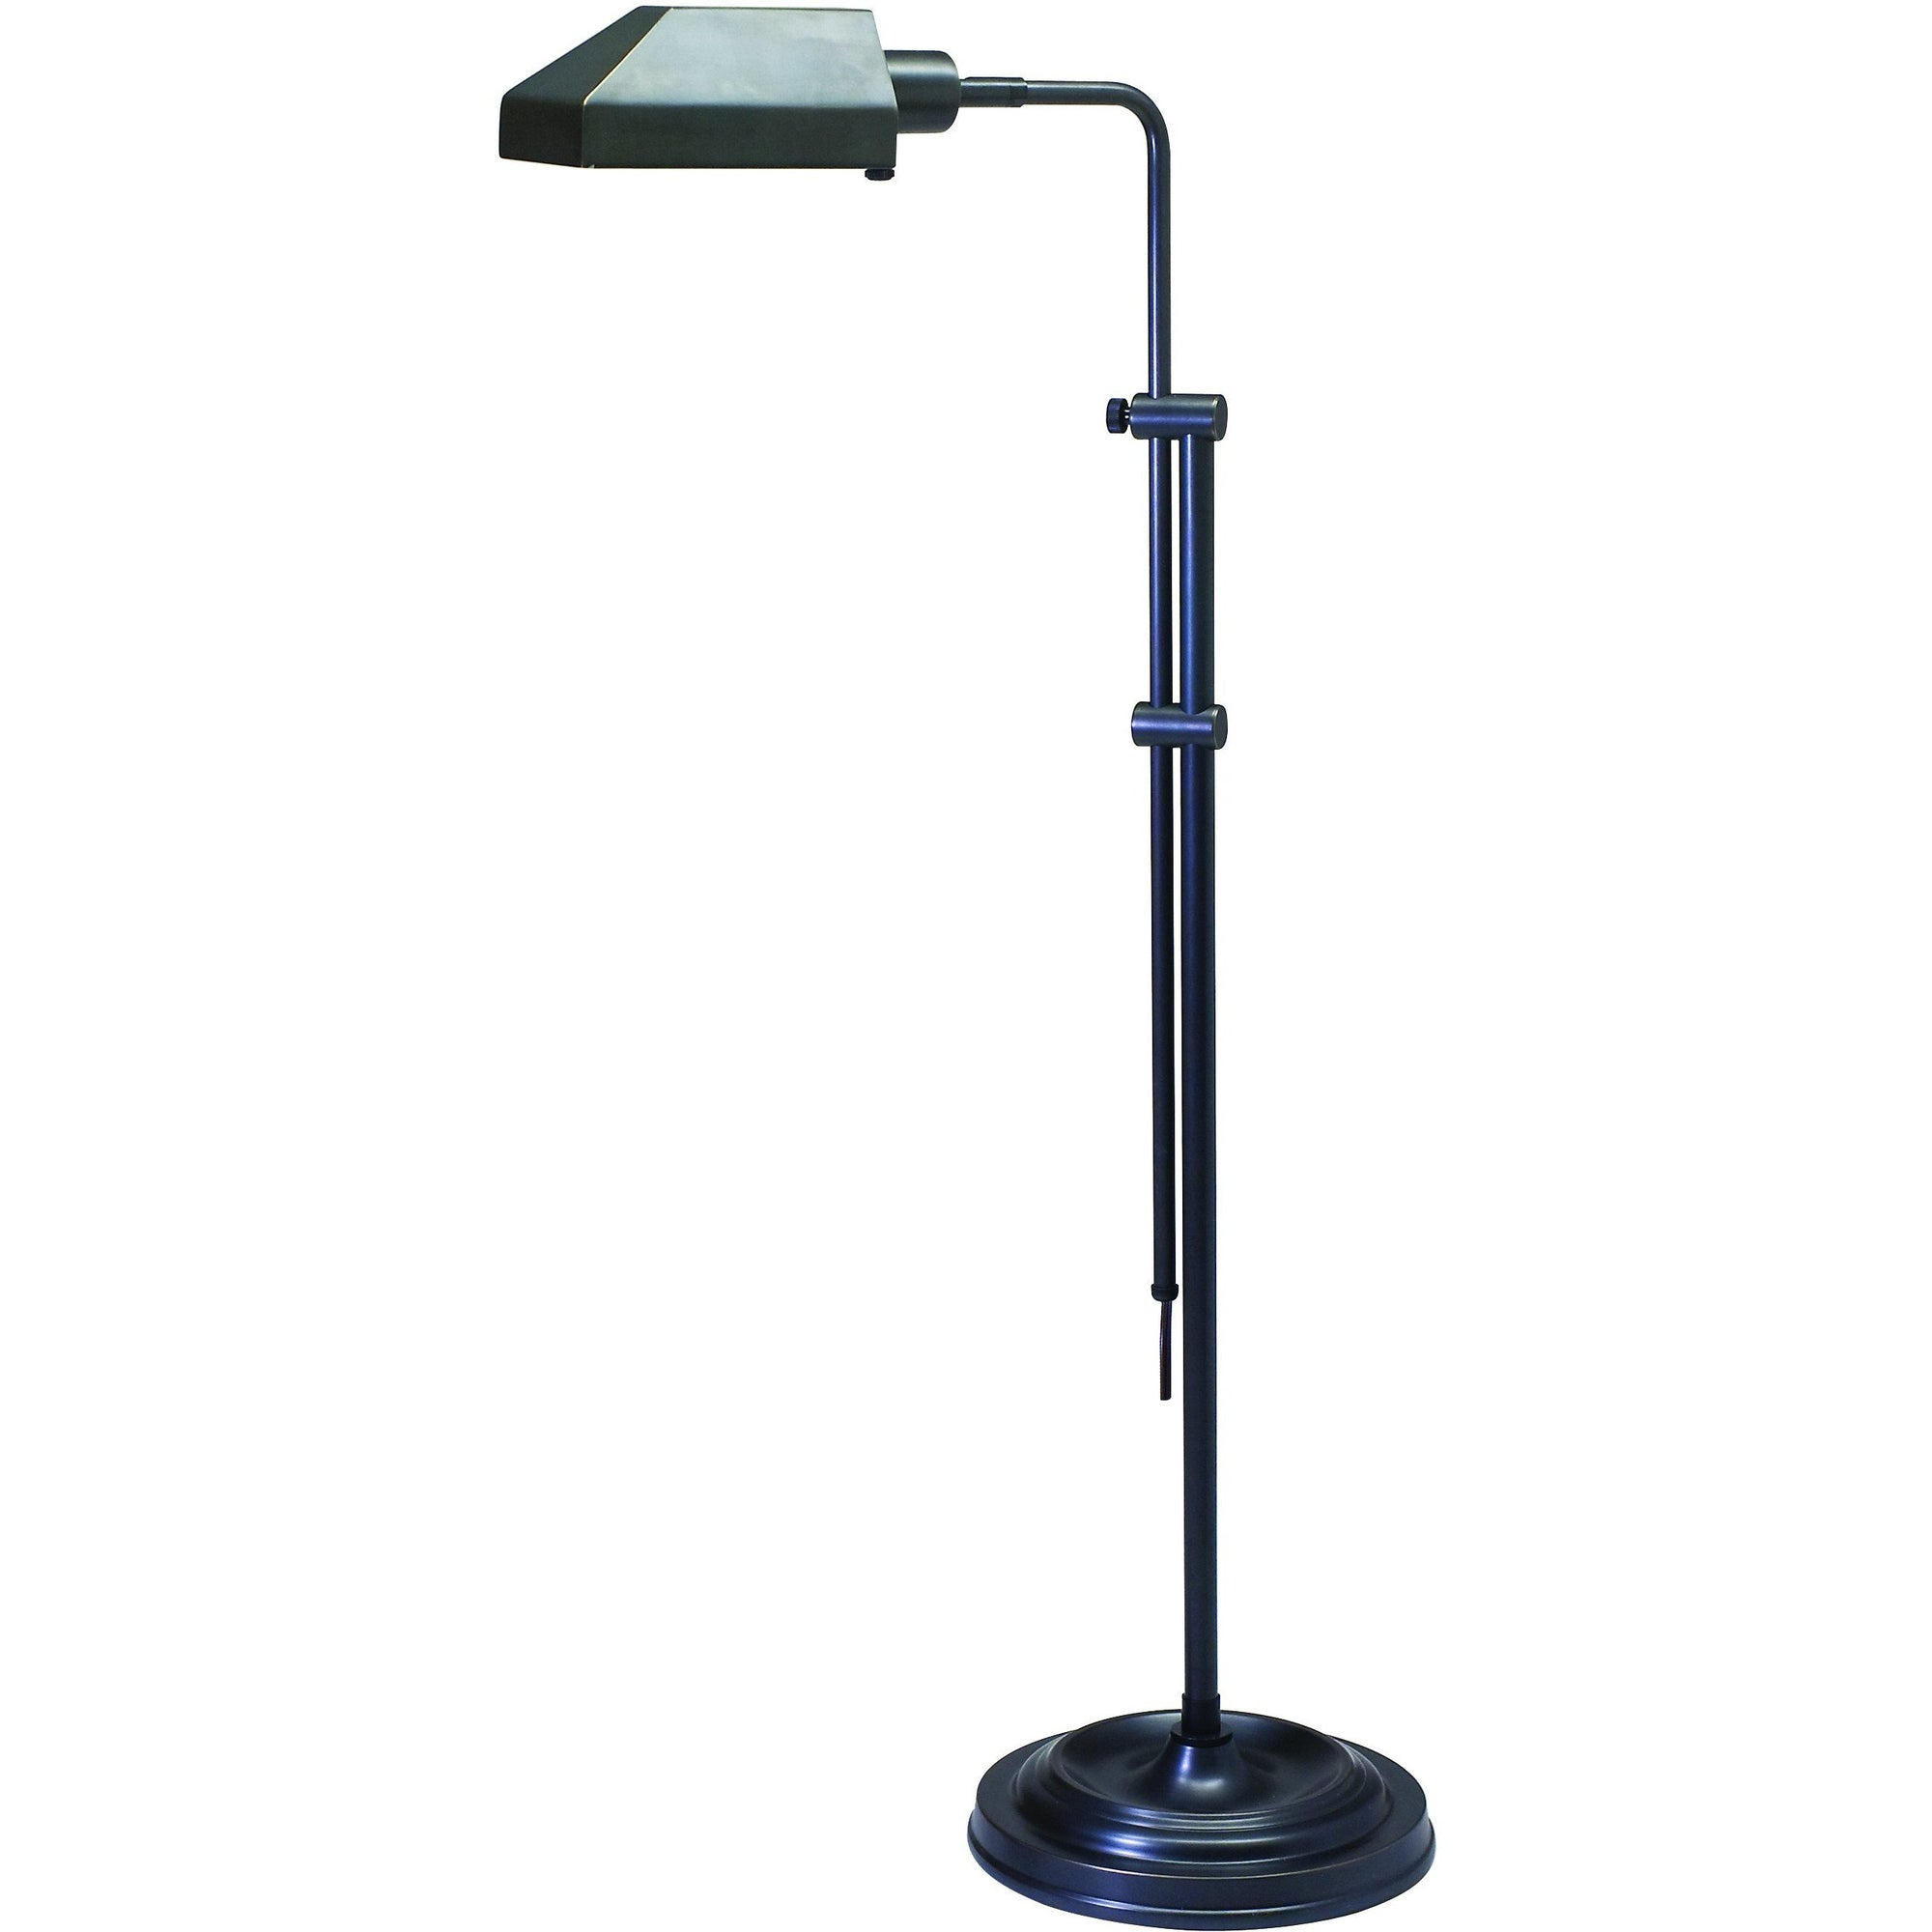 House Of Troy Floor Lamps Coach Adjustable Pharmacy Floor Lamp by House Of Troy CH825-OB